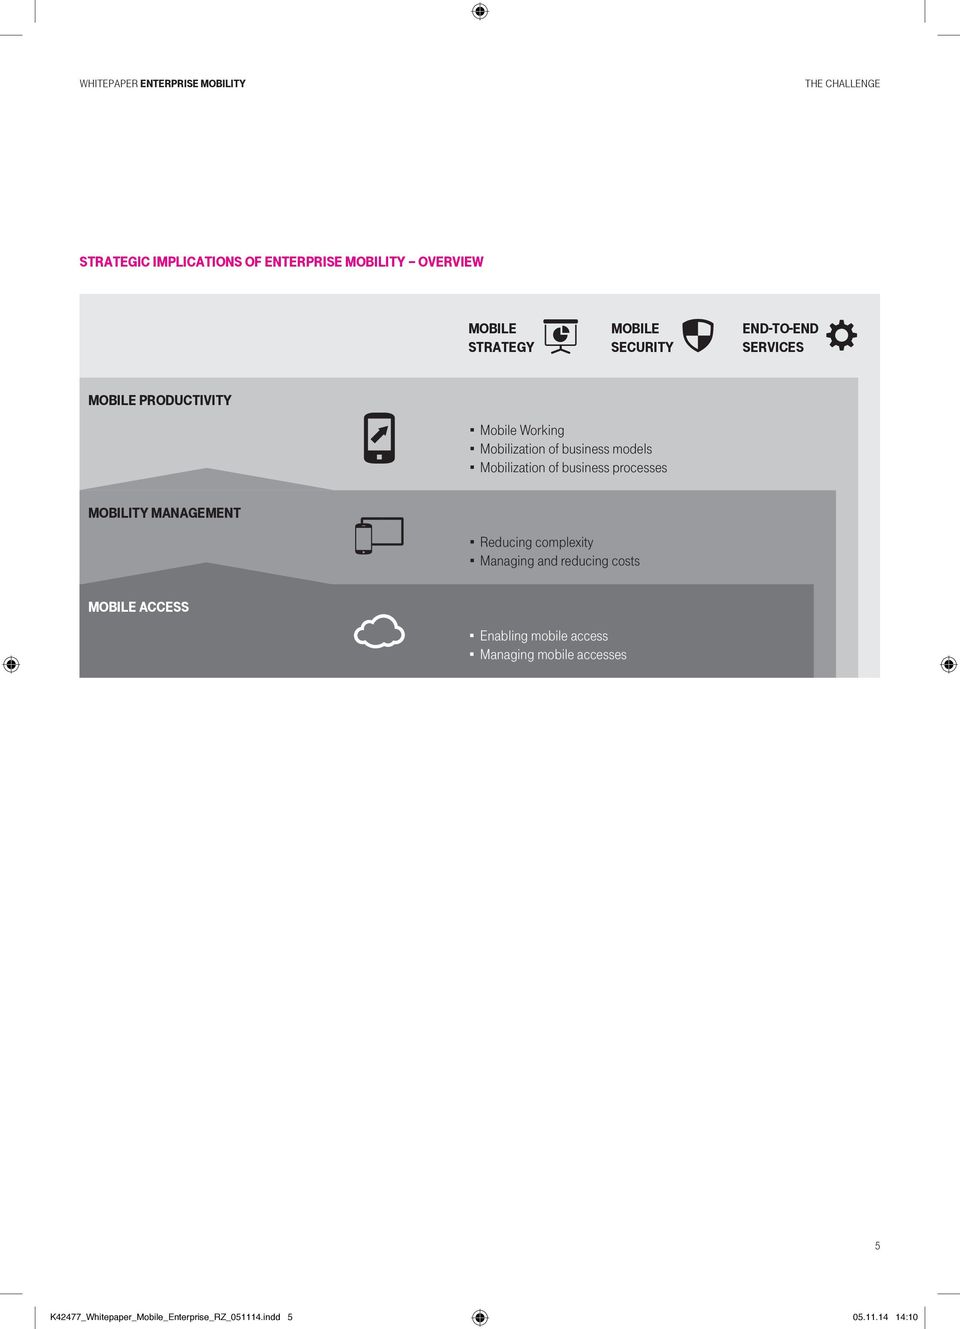 business processes MOBILITy MANAGEMENT Reducing complexity Managing and reducing costs MObile Access